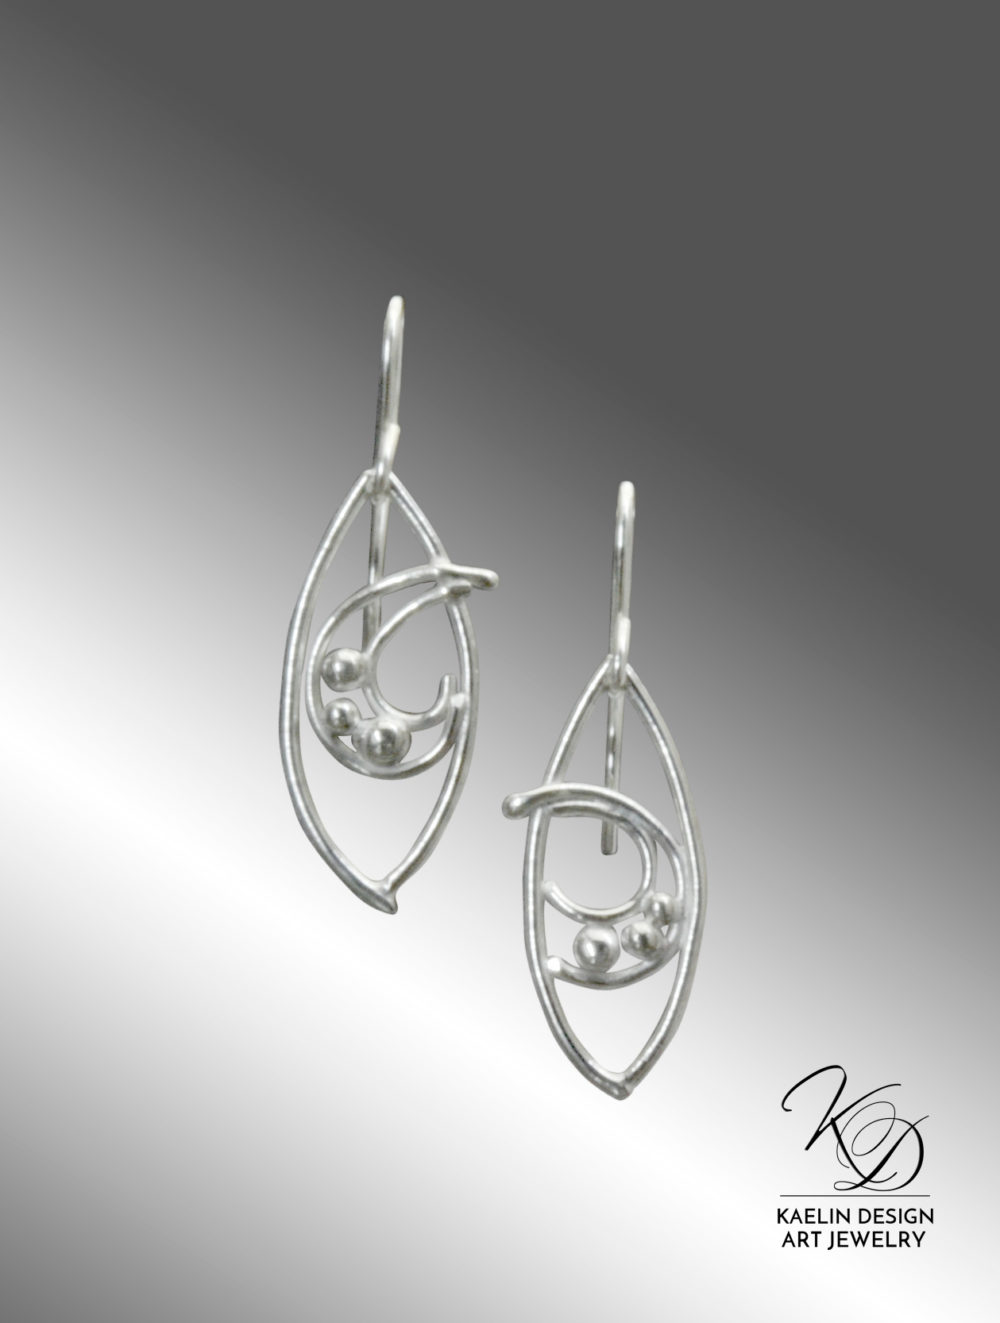 Rough Waters Hand Forged Sterling Silver Fine Art Earrings by Kaelin Design